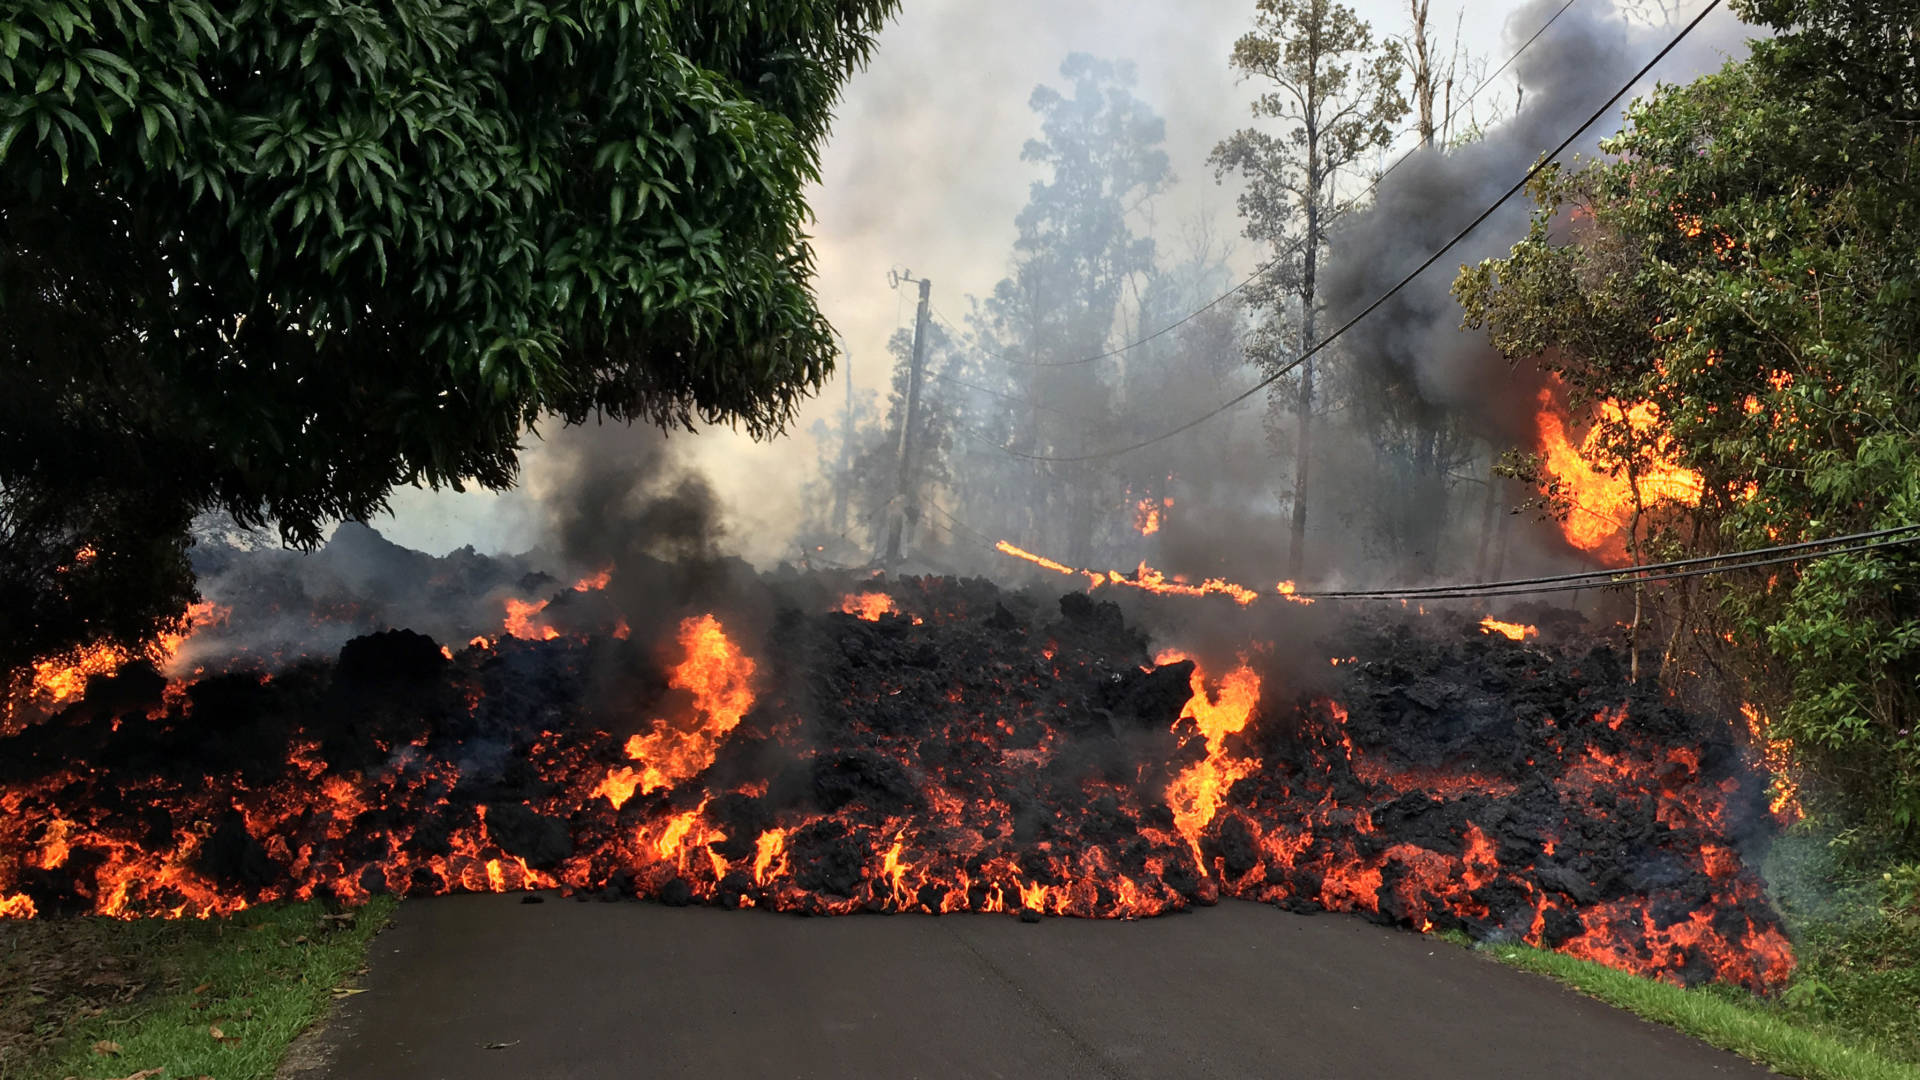 A lava flow moves on Makamae Street in the Leilani Estates subdivision on Sunday, following an eruption by Hawaii's Kilauea volcano. The governor of Hawaii has declared a local state of emergency and some 1,700 residents have been ordered to flee. U.S. Geological Survey/Getty Images